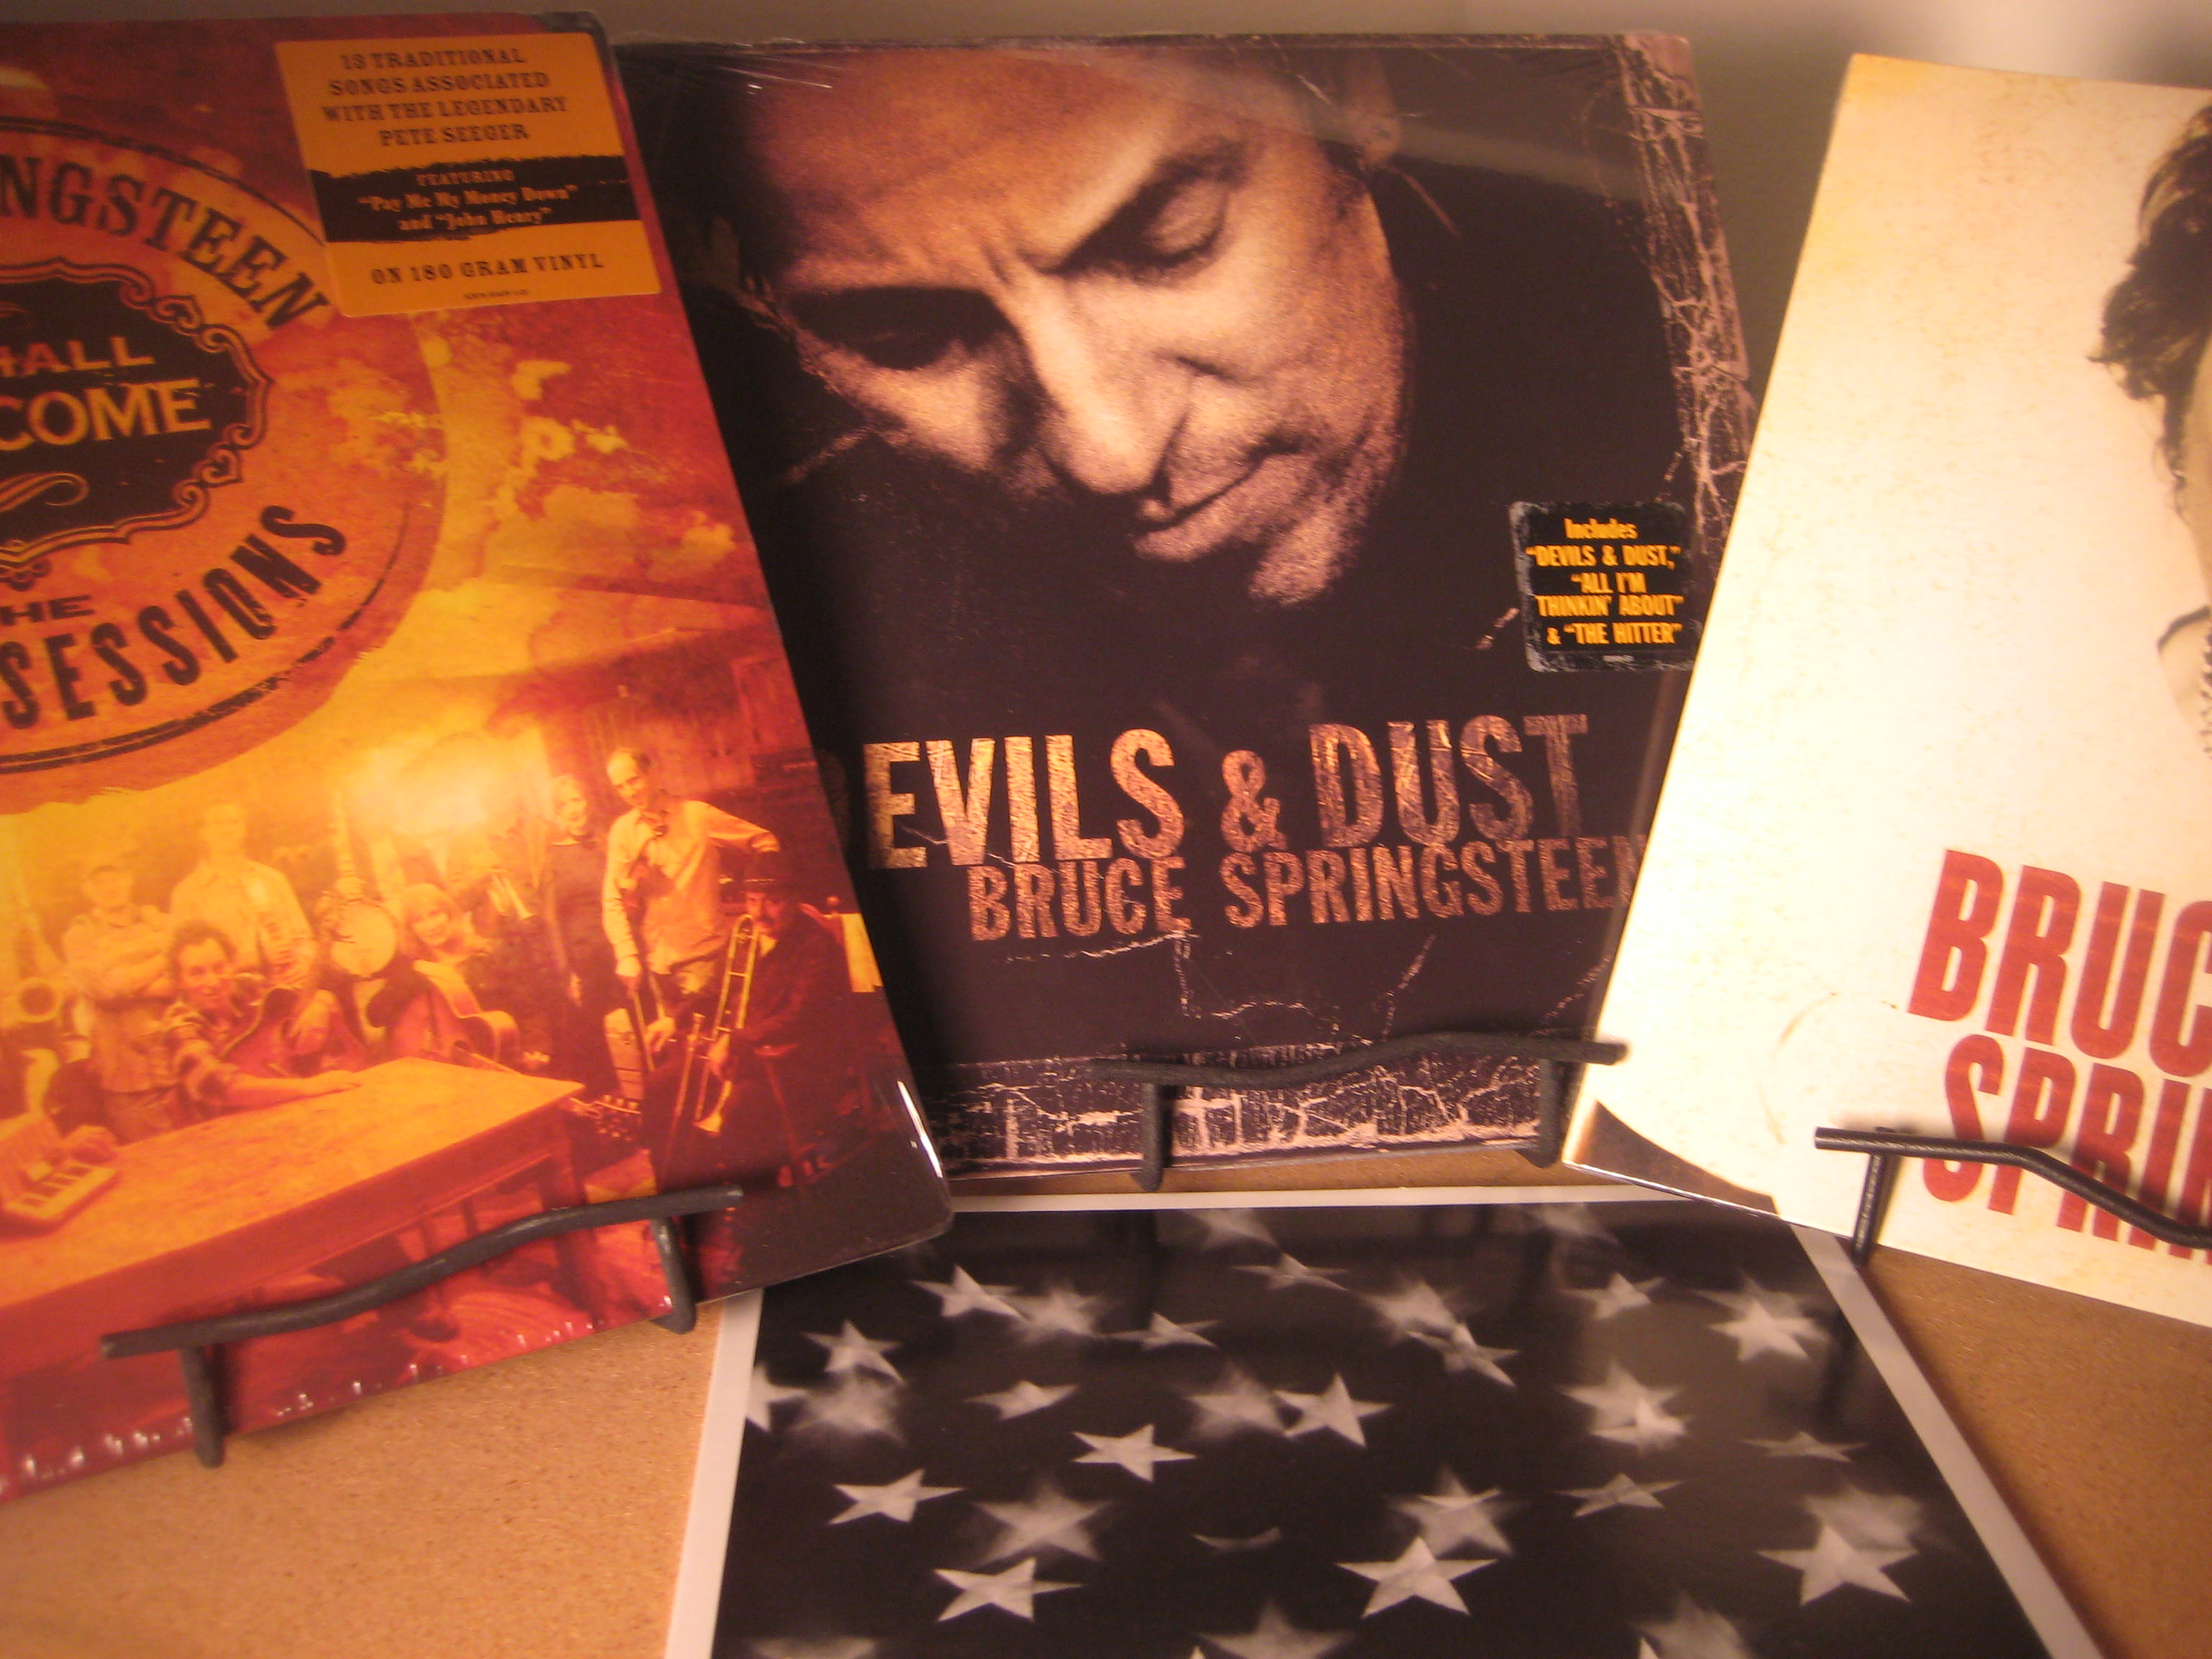 """Bruce Springsteen - 4 Titles - Devis & Dust, Magic, Seger Sessions, and Dream Baby Dream"" - Product Image"